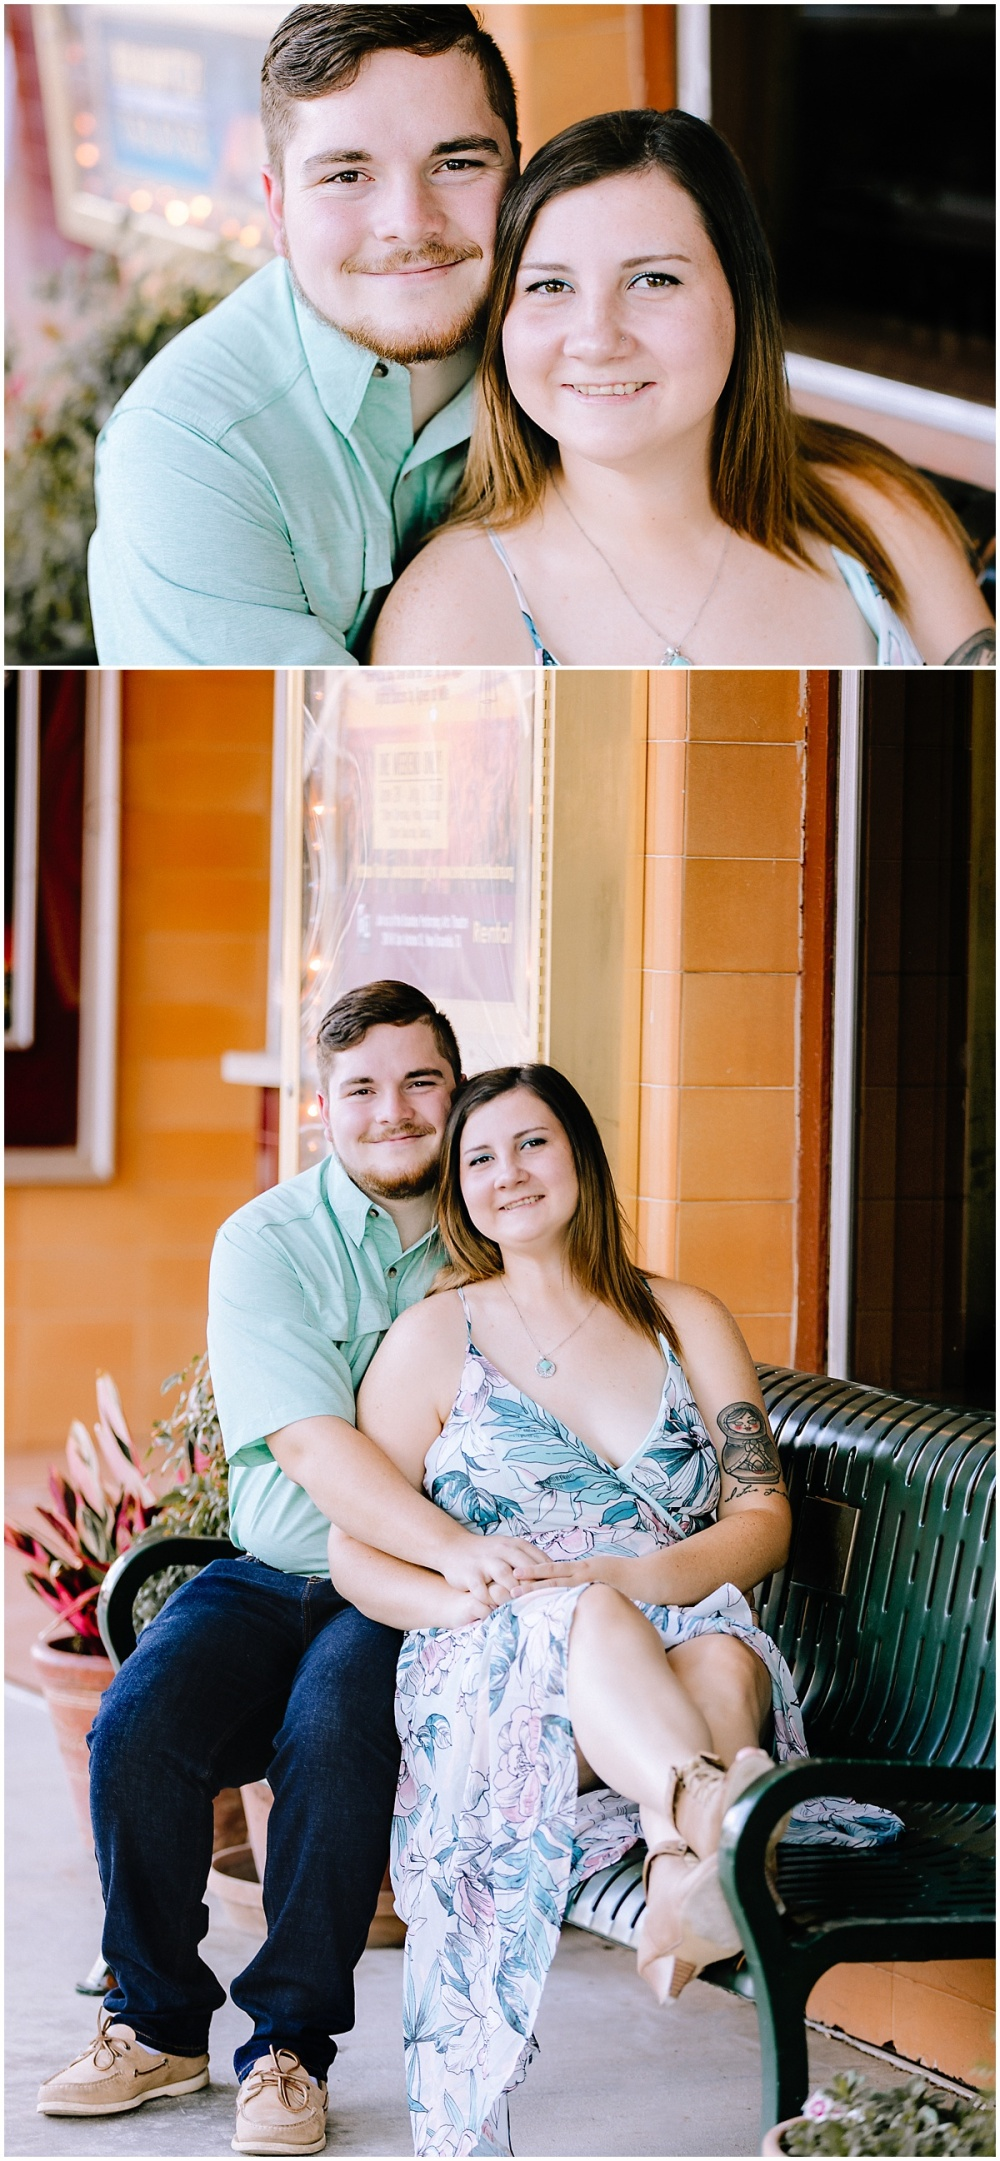 Engagement-Portraits-Couples-New-Braunels-Downtown-Carly-Barton-Photography-Wedding-Photographer-Gruene-Texas_0015.jpg